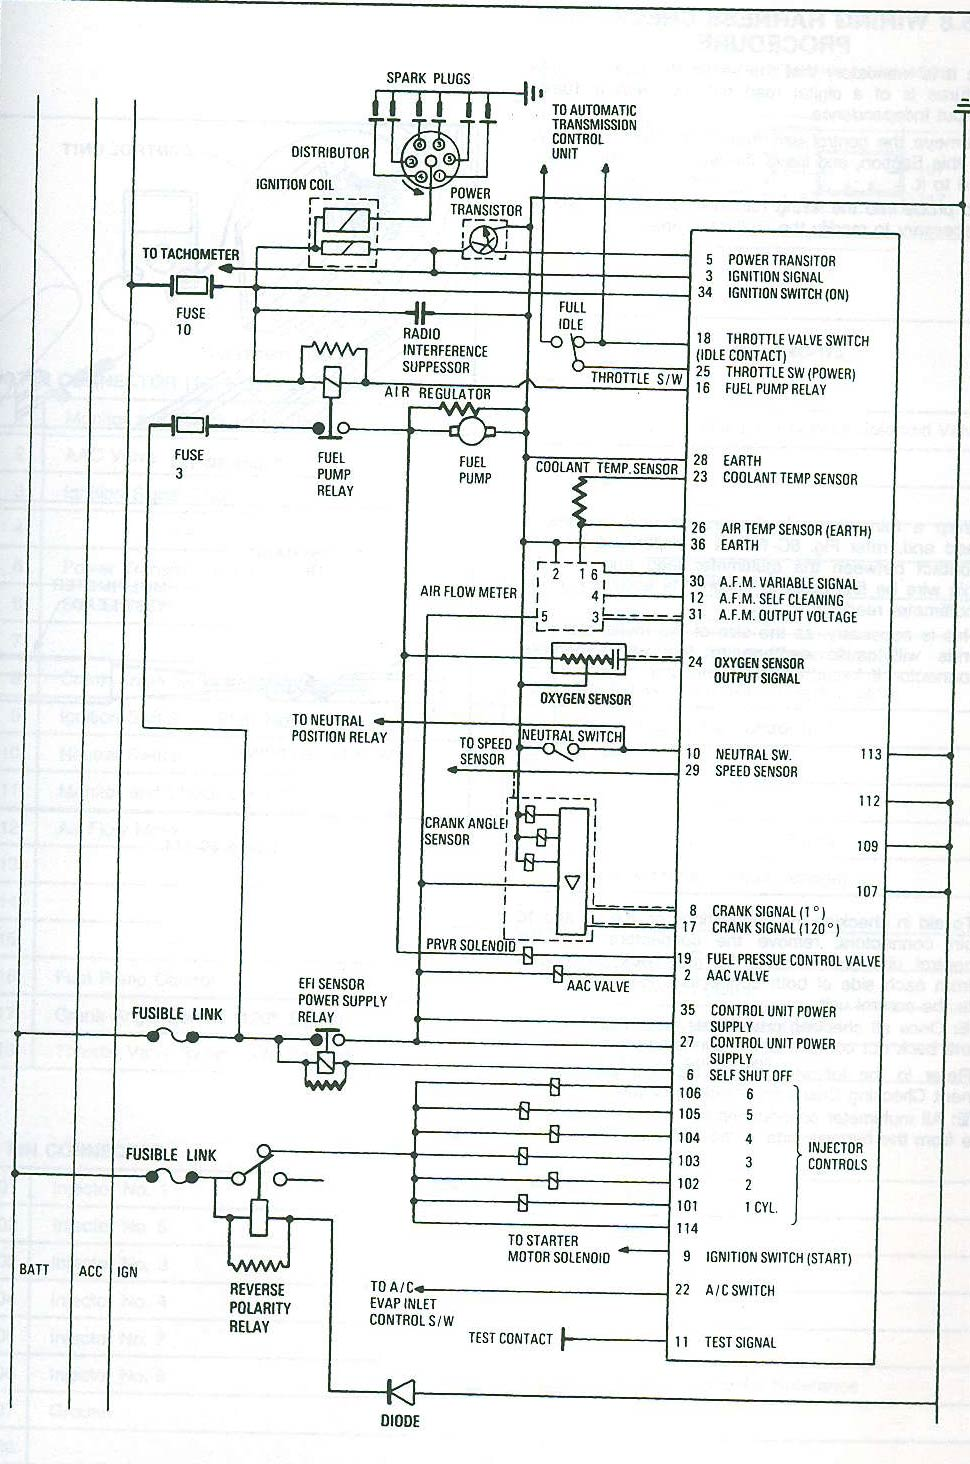 medium resolution of suzuki jimny ecu wiring diagram wiring librarysuzuki jimny ecu wiring diagram